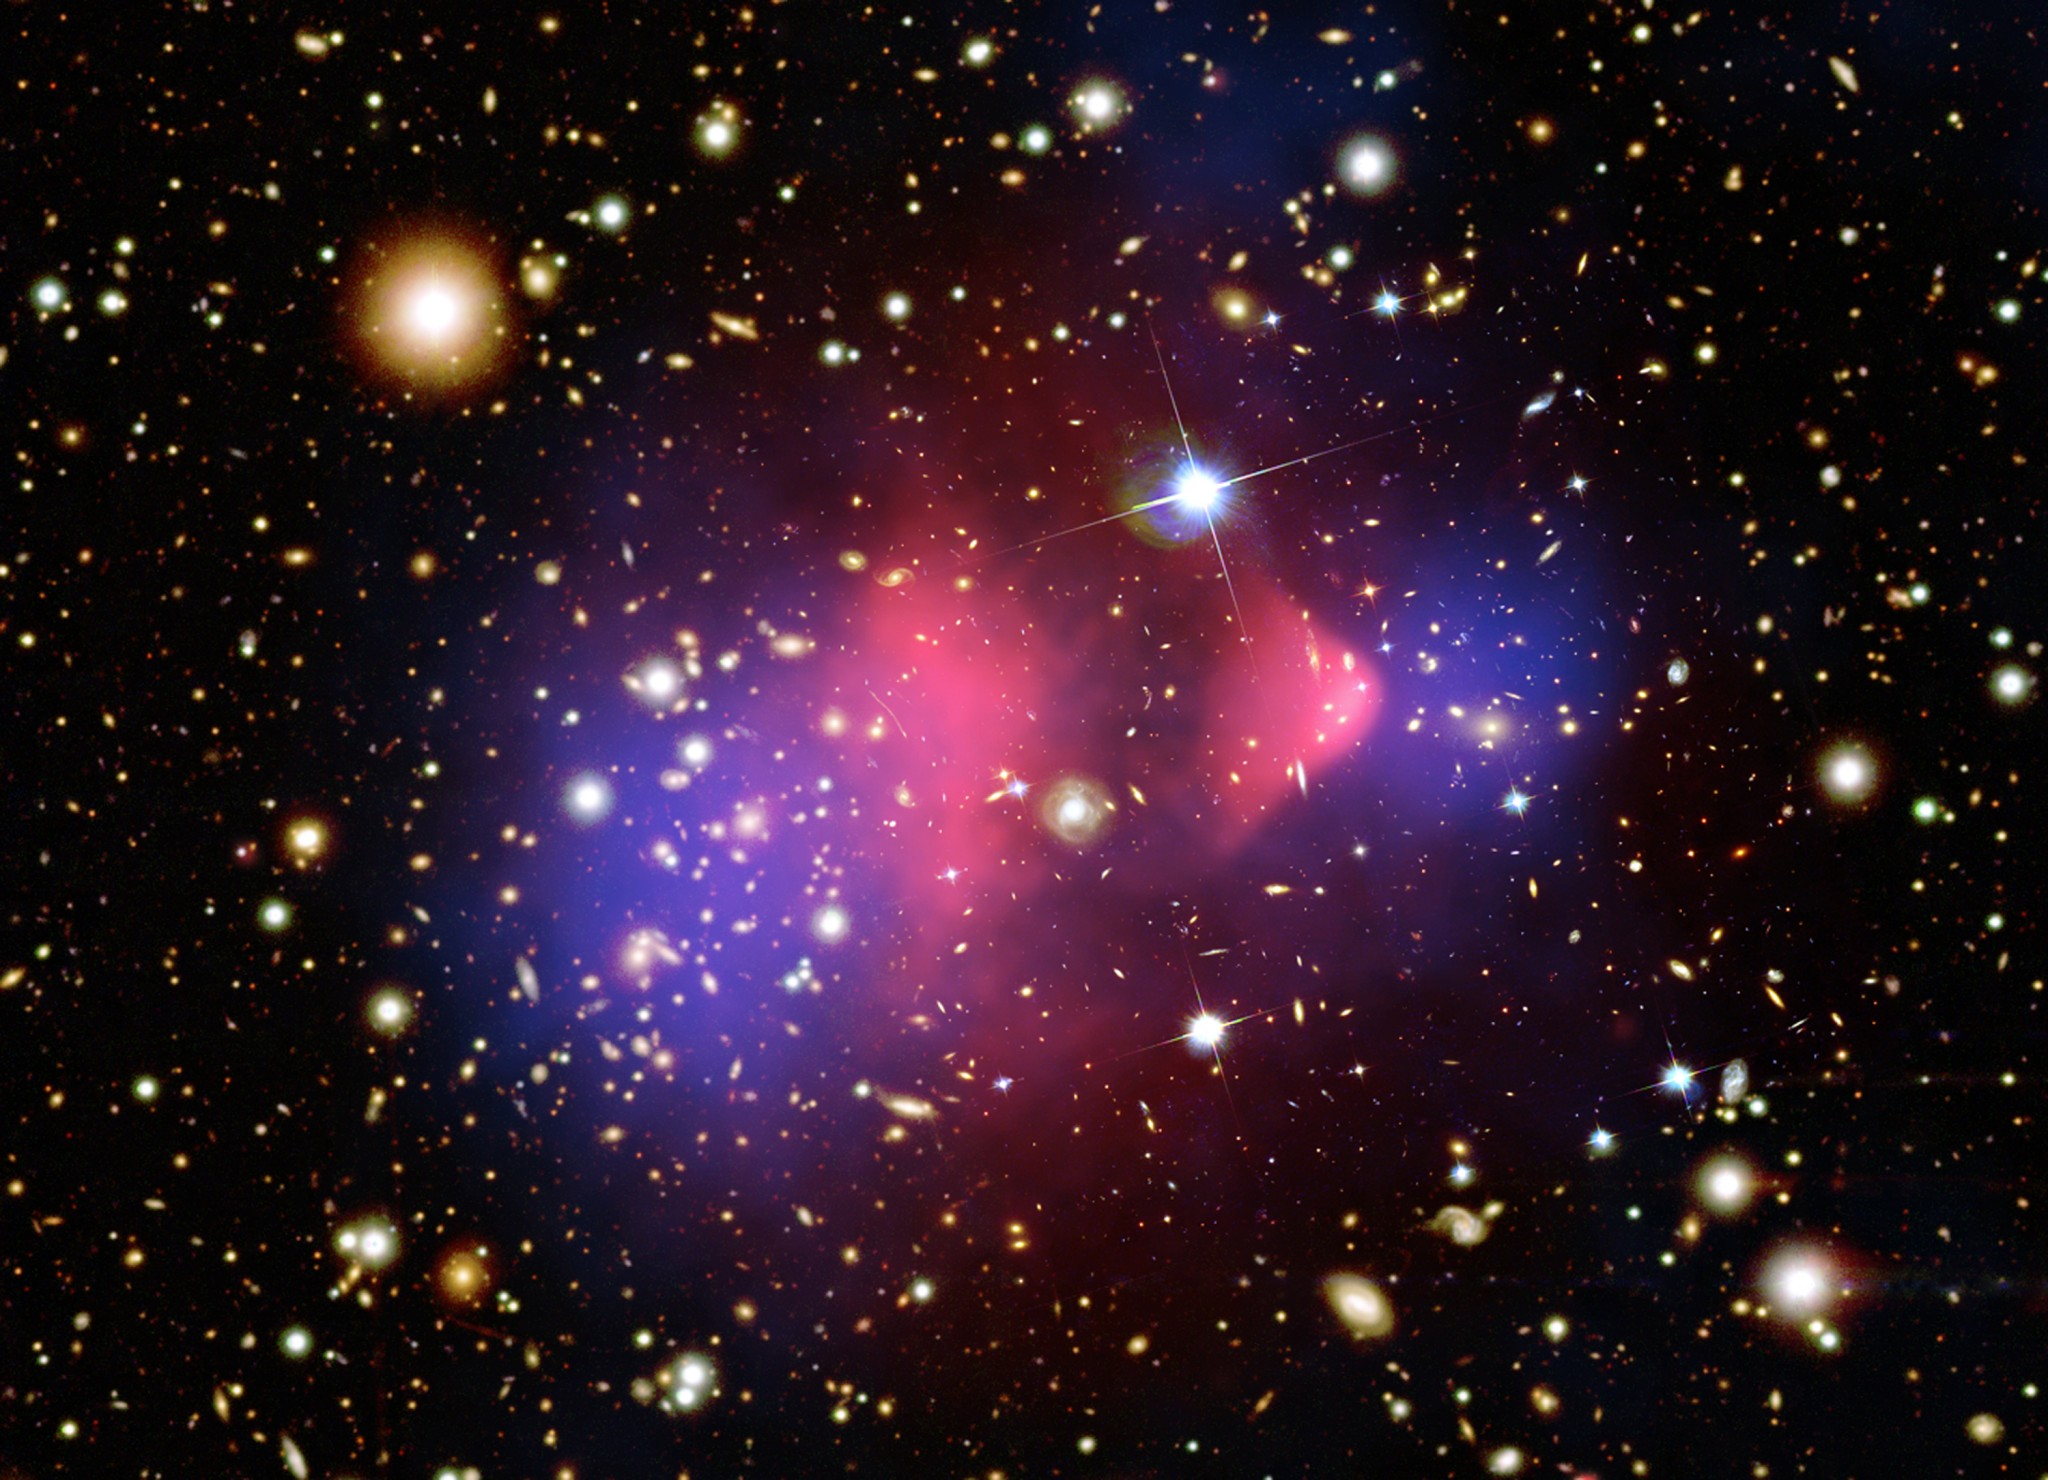 why don t galaxies just pass through each other instead of colliding